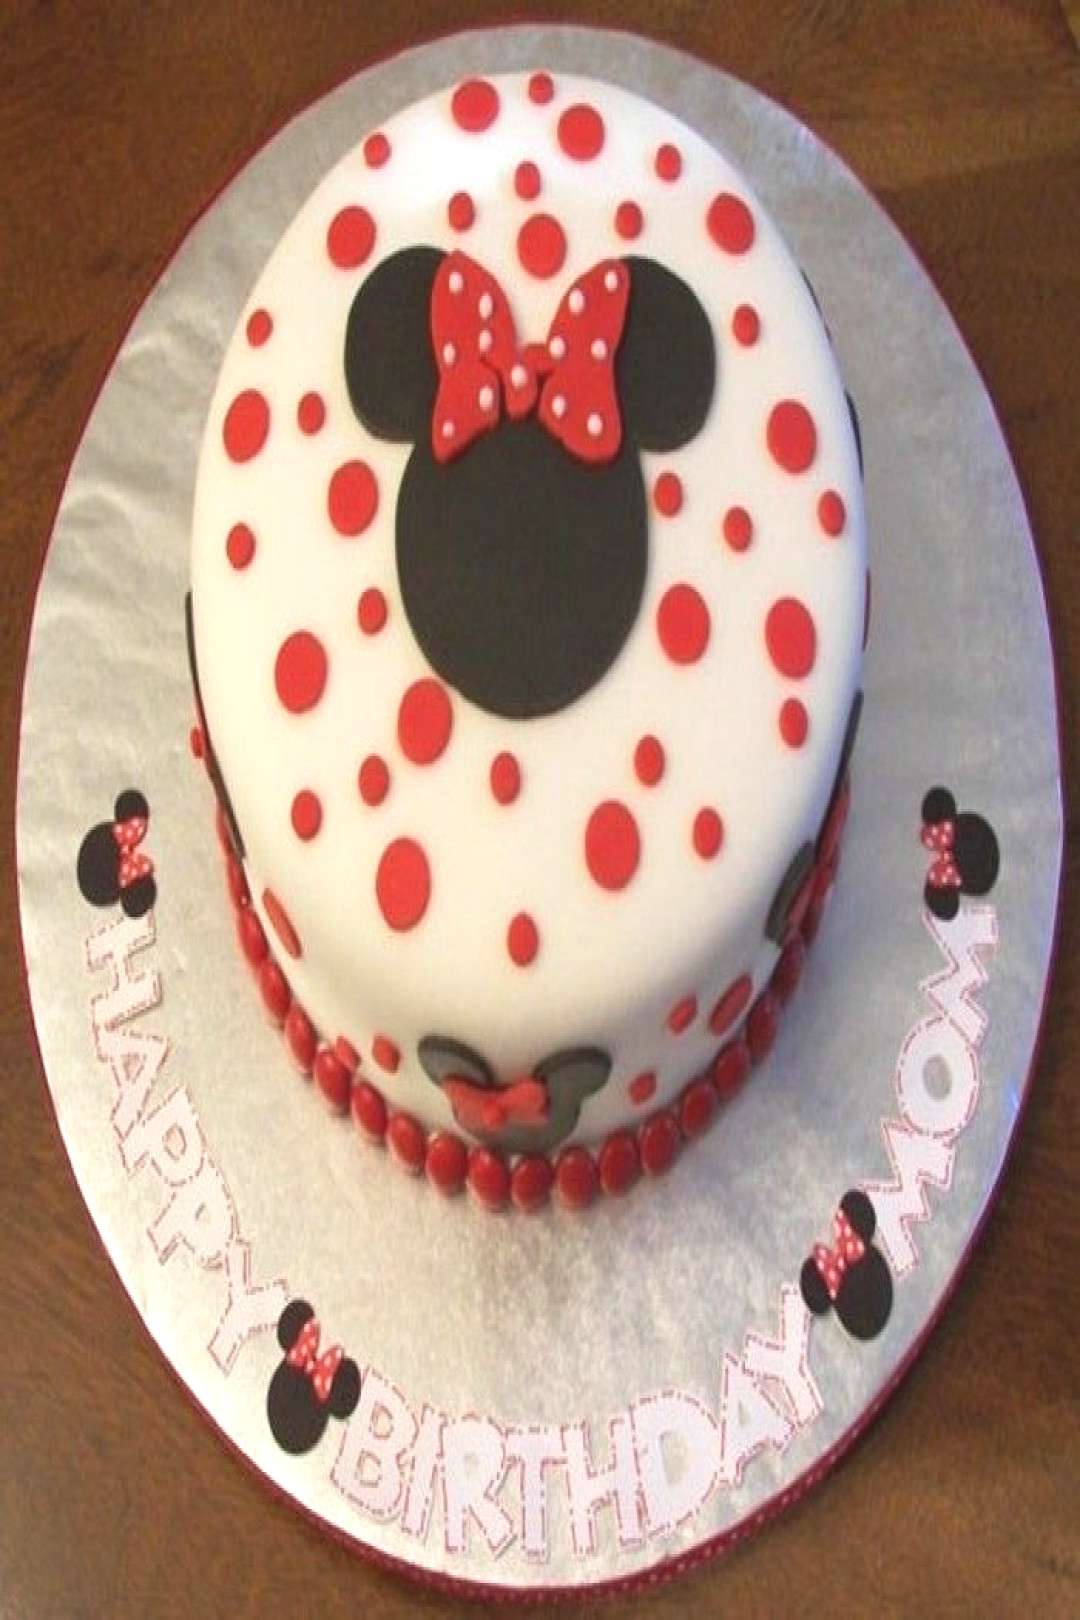 ▷ Make 1001+ ideas for motif cakes yourself and make them fun#cakes